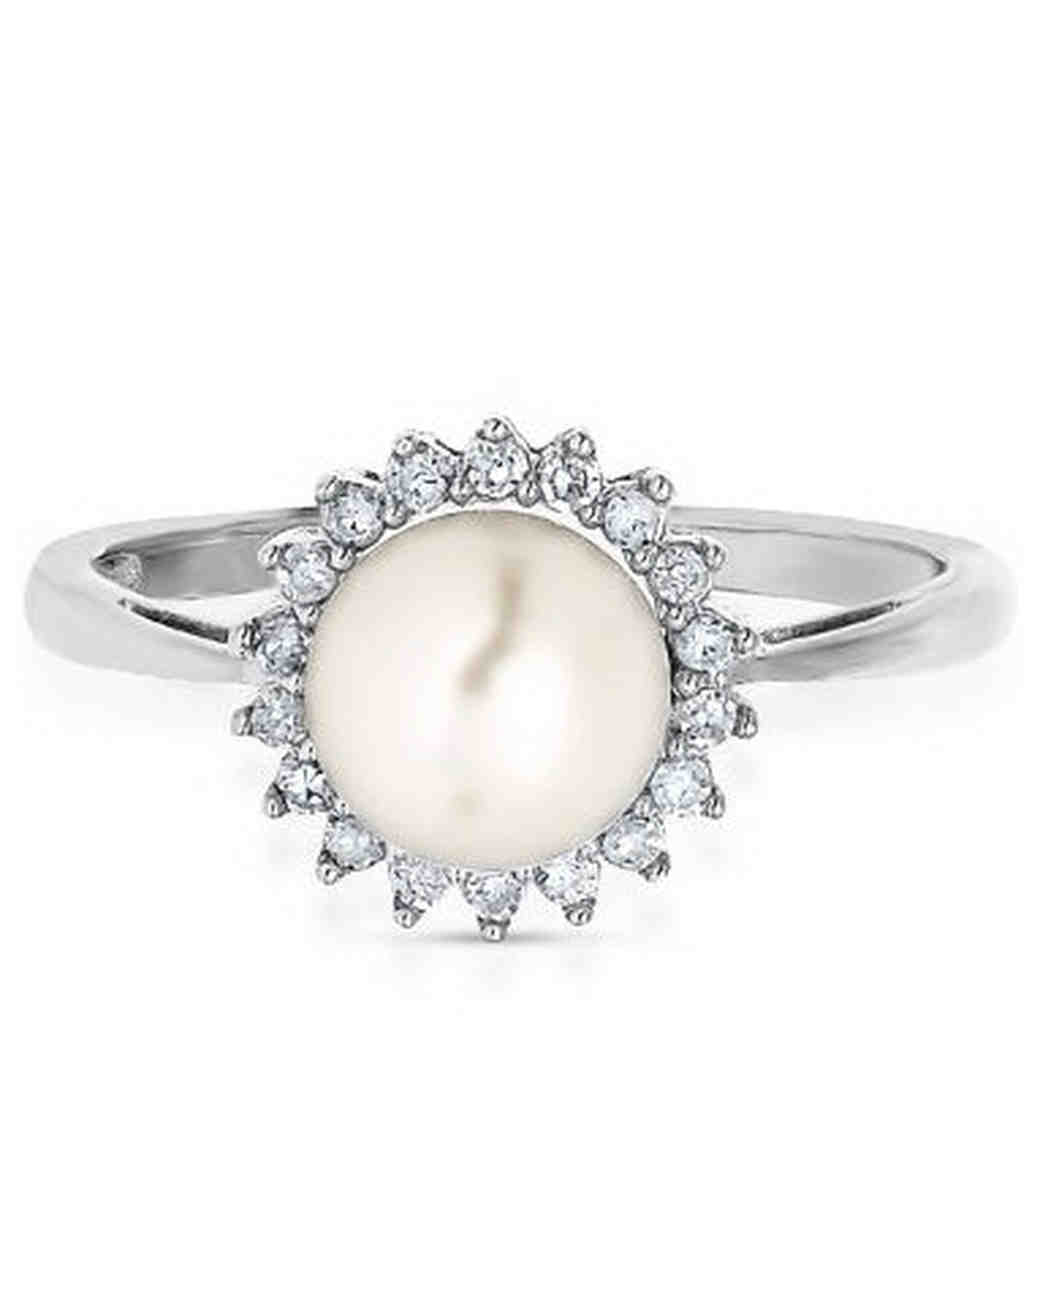 Pretty pearl engagement rings martha stewart weddings for Pearl engagement ring with wedding band